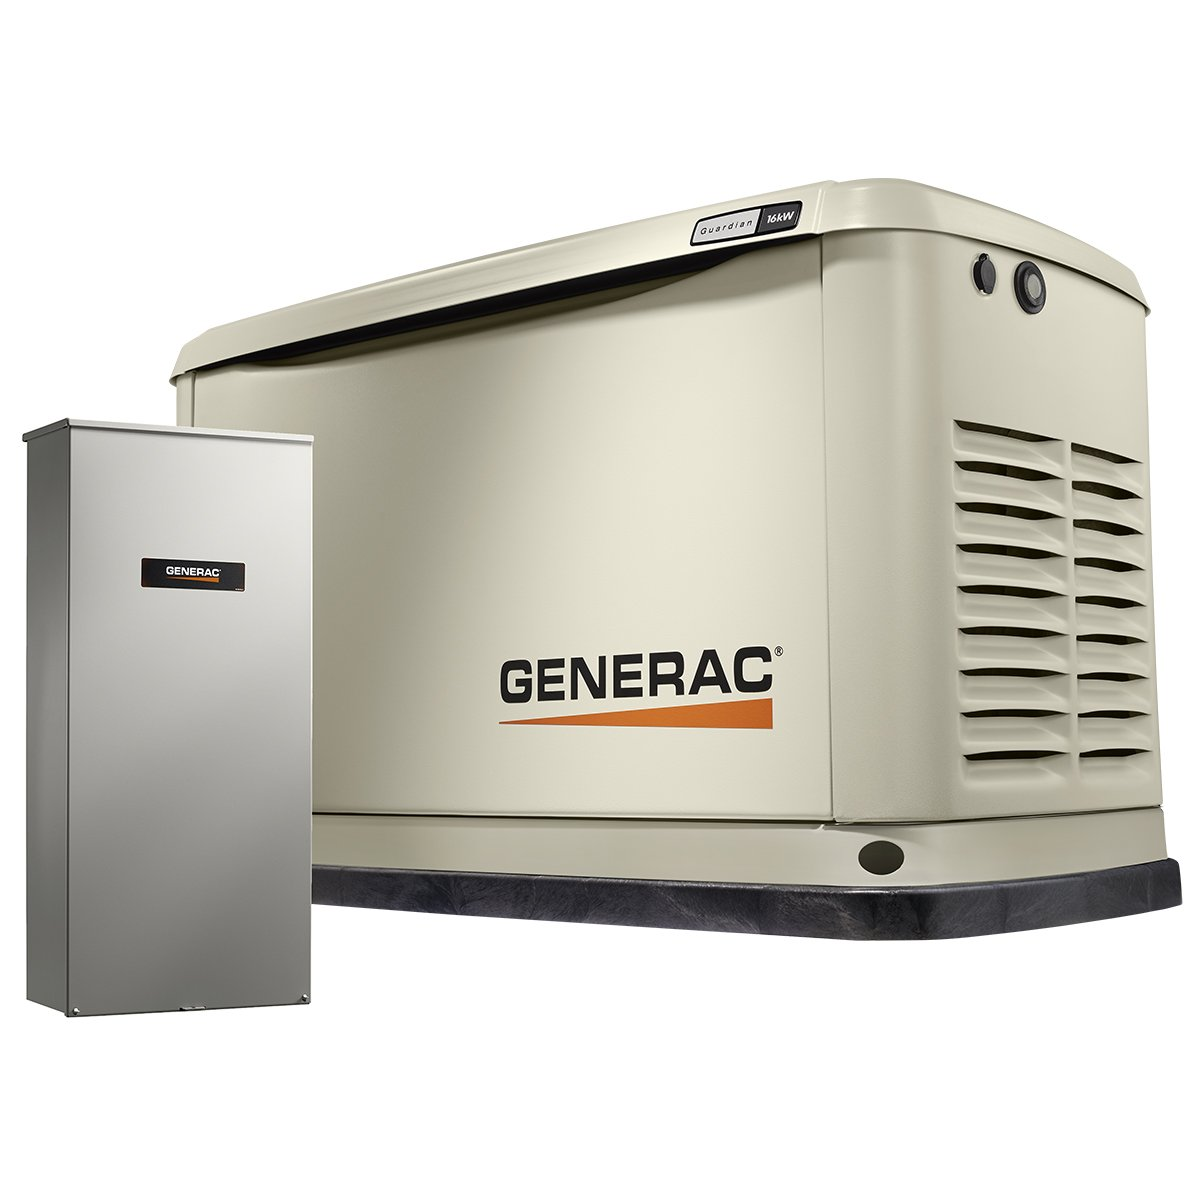 Generac 7036 Guardian Series 16kW/16kW Air Cooled Home Standby ...